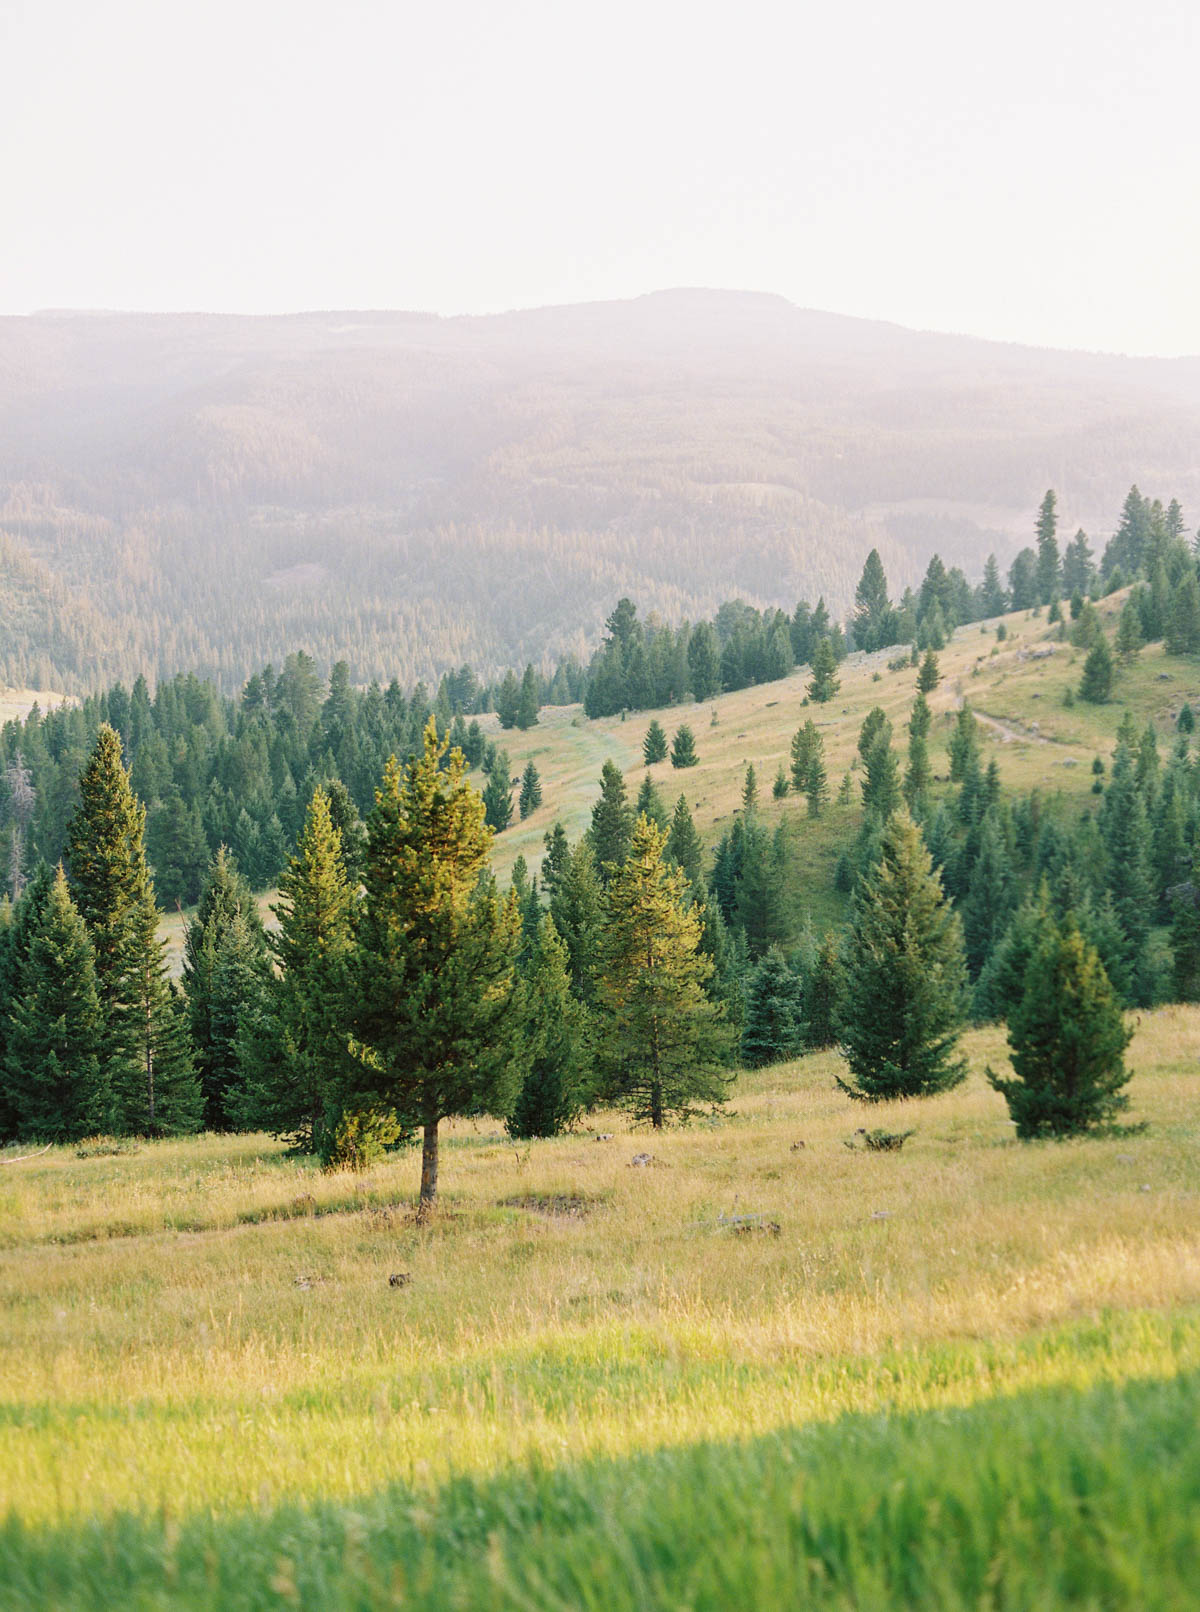 An evening landscape with evergreen trees in Big Sky, Montana